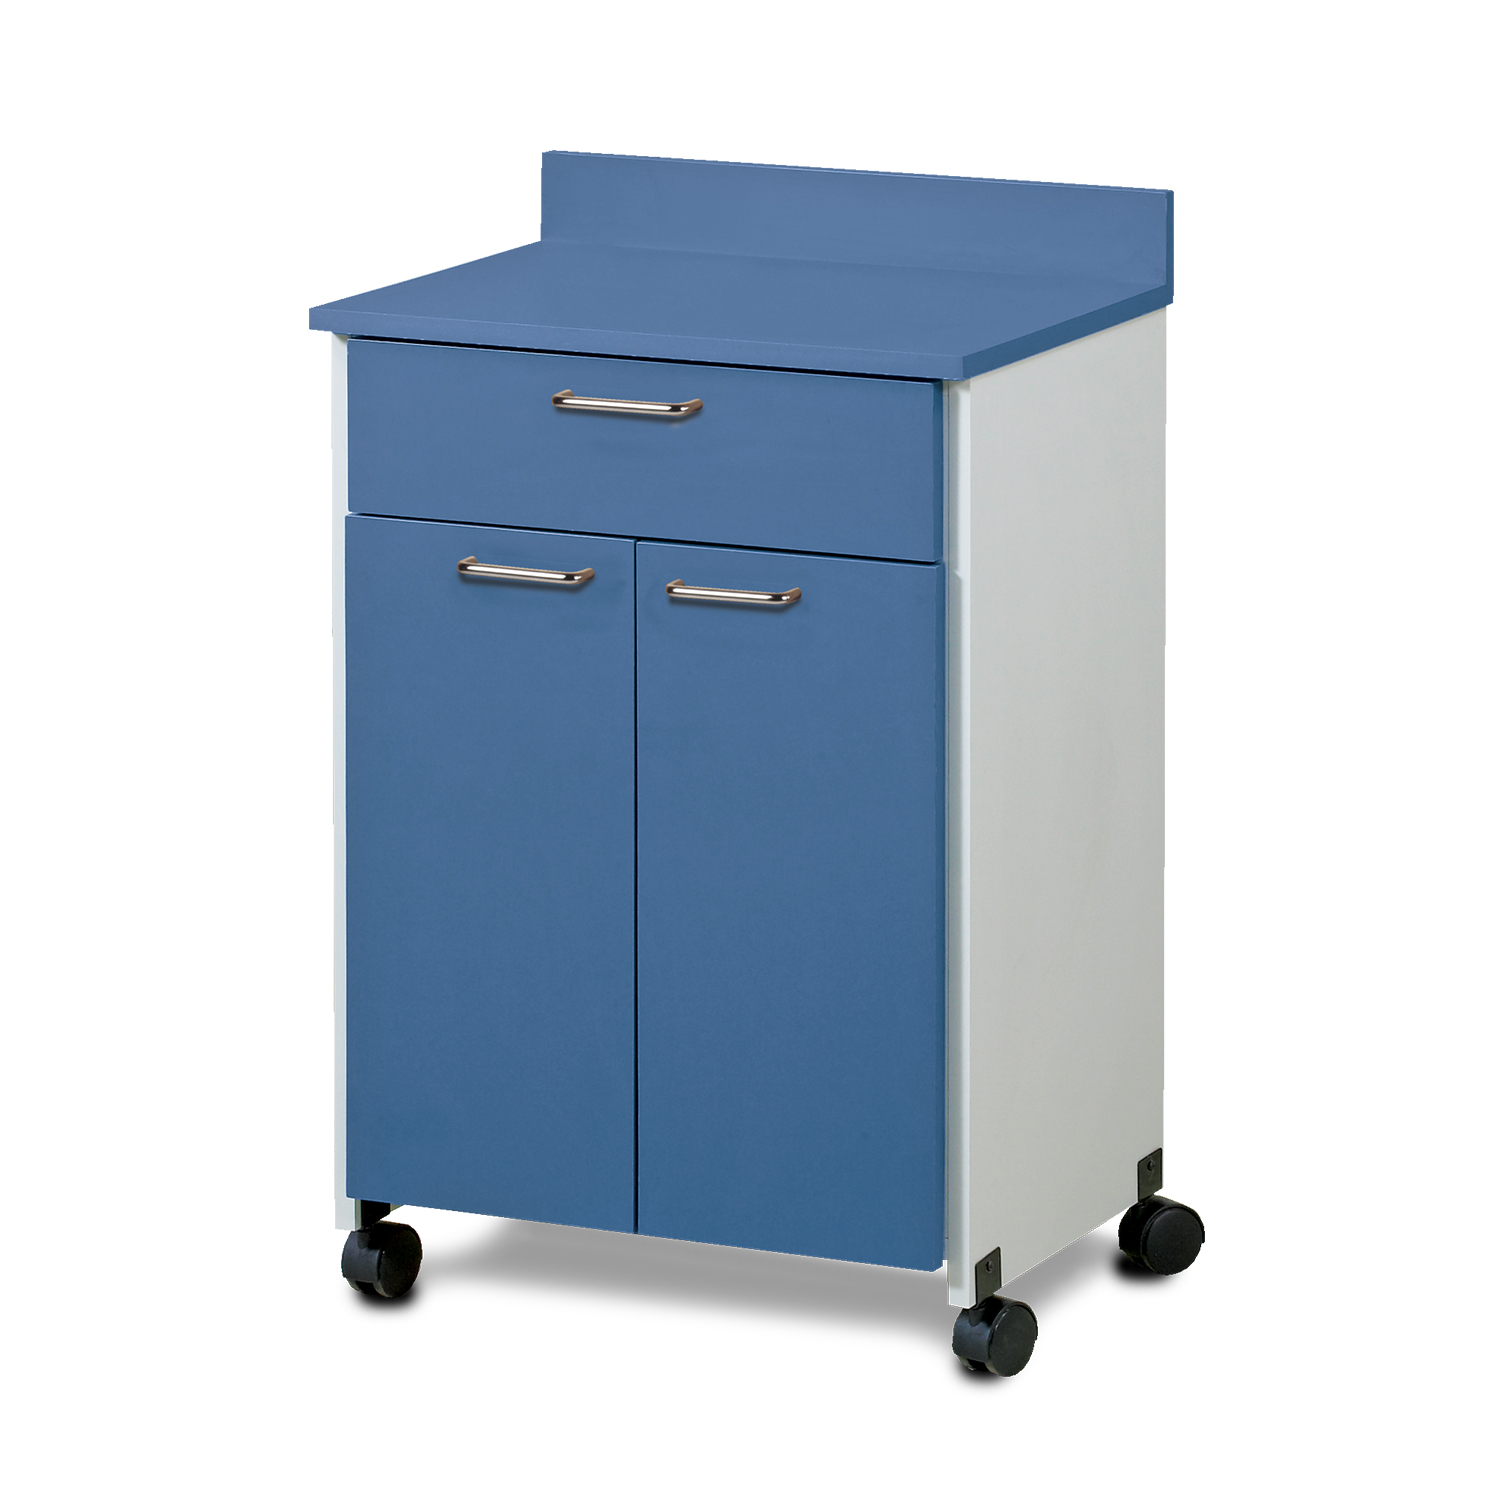 Clinton Single Base Cabinet with 2 Doors and 1 Drawer